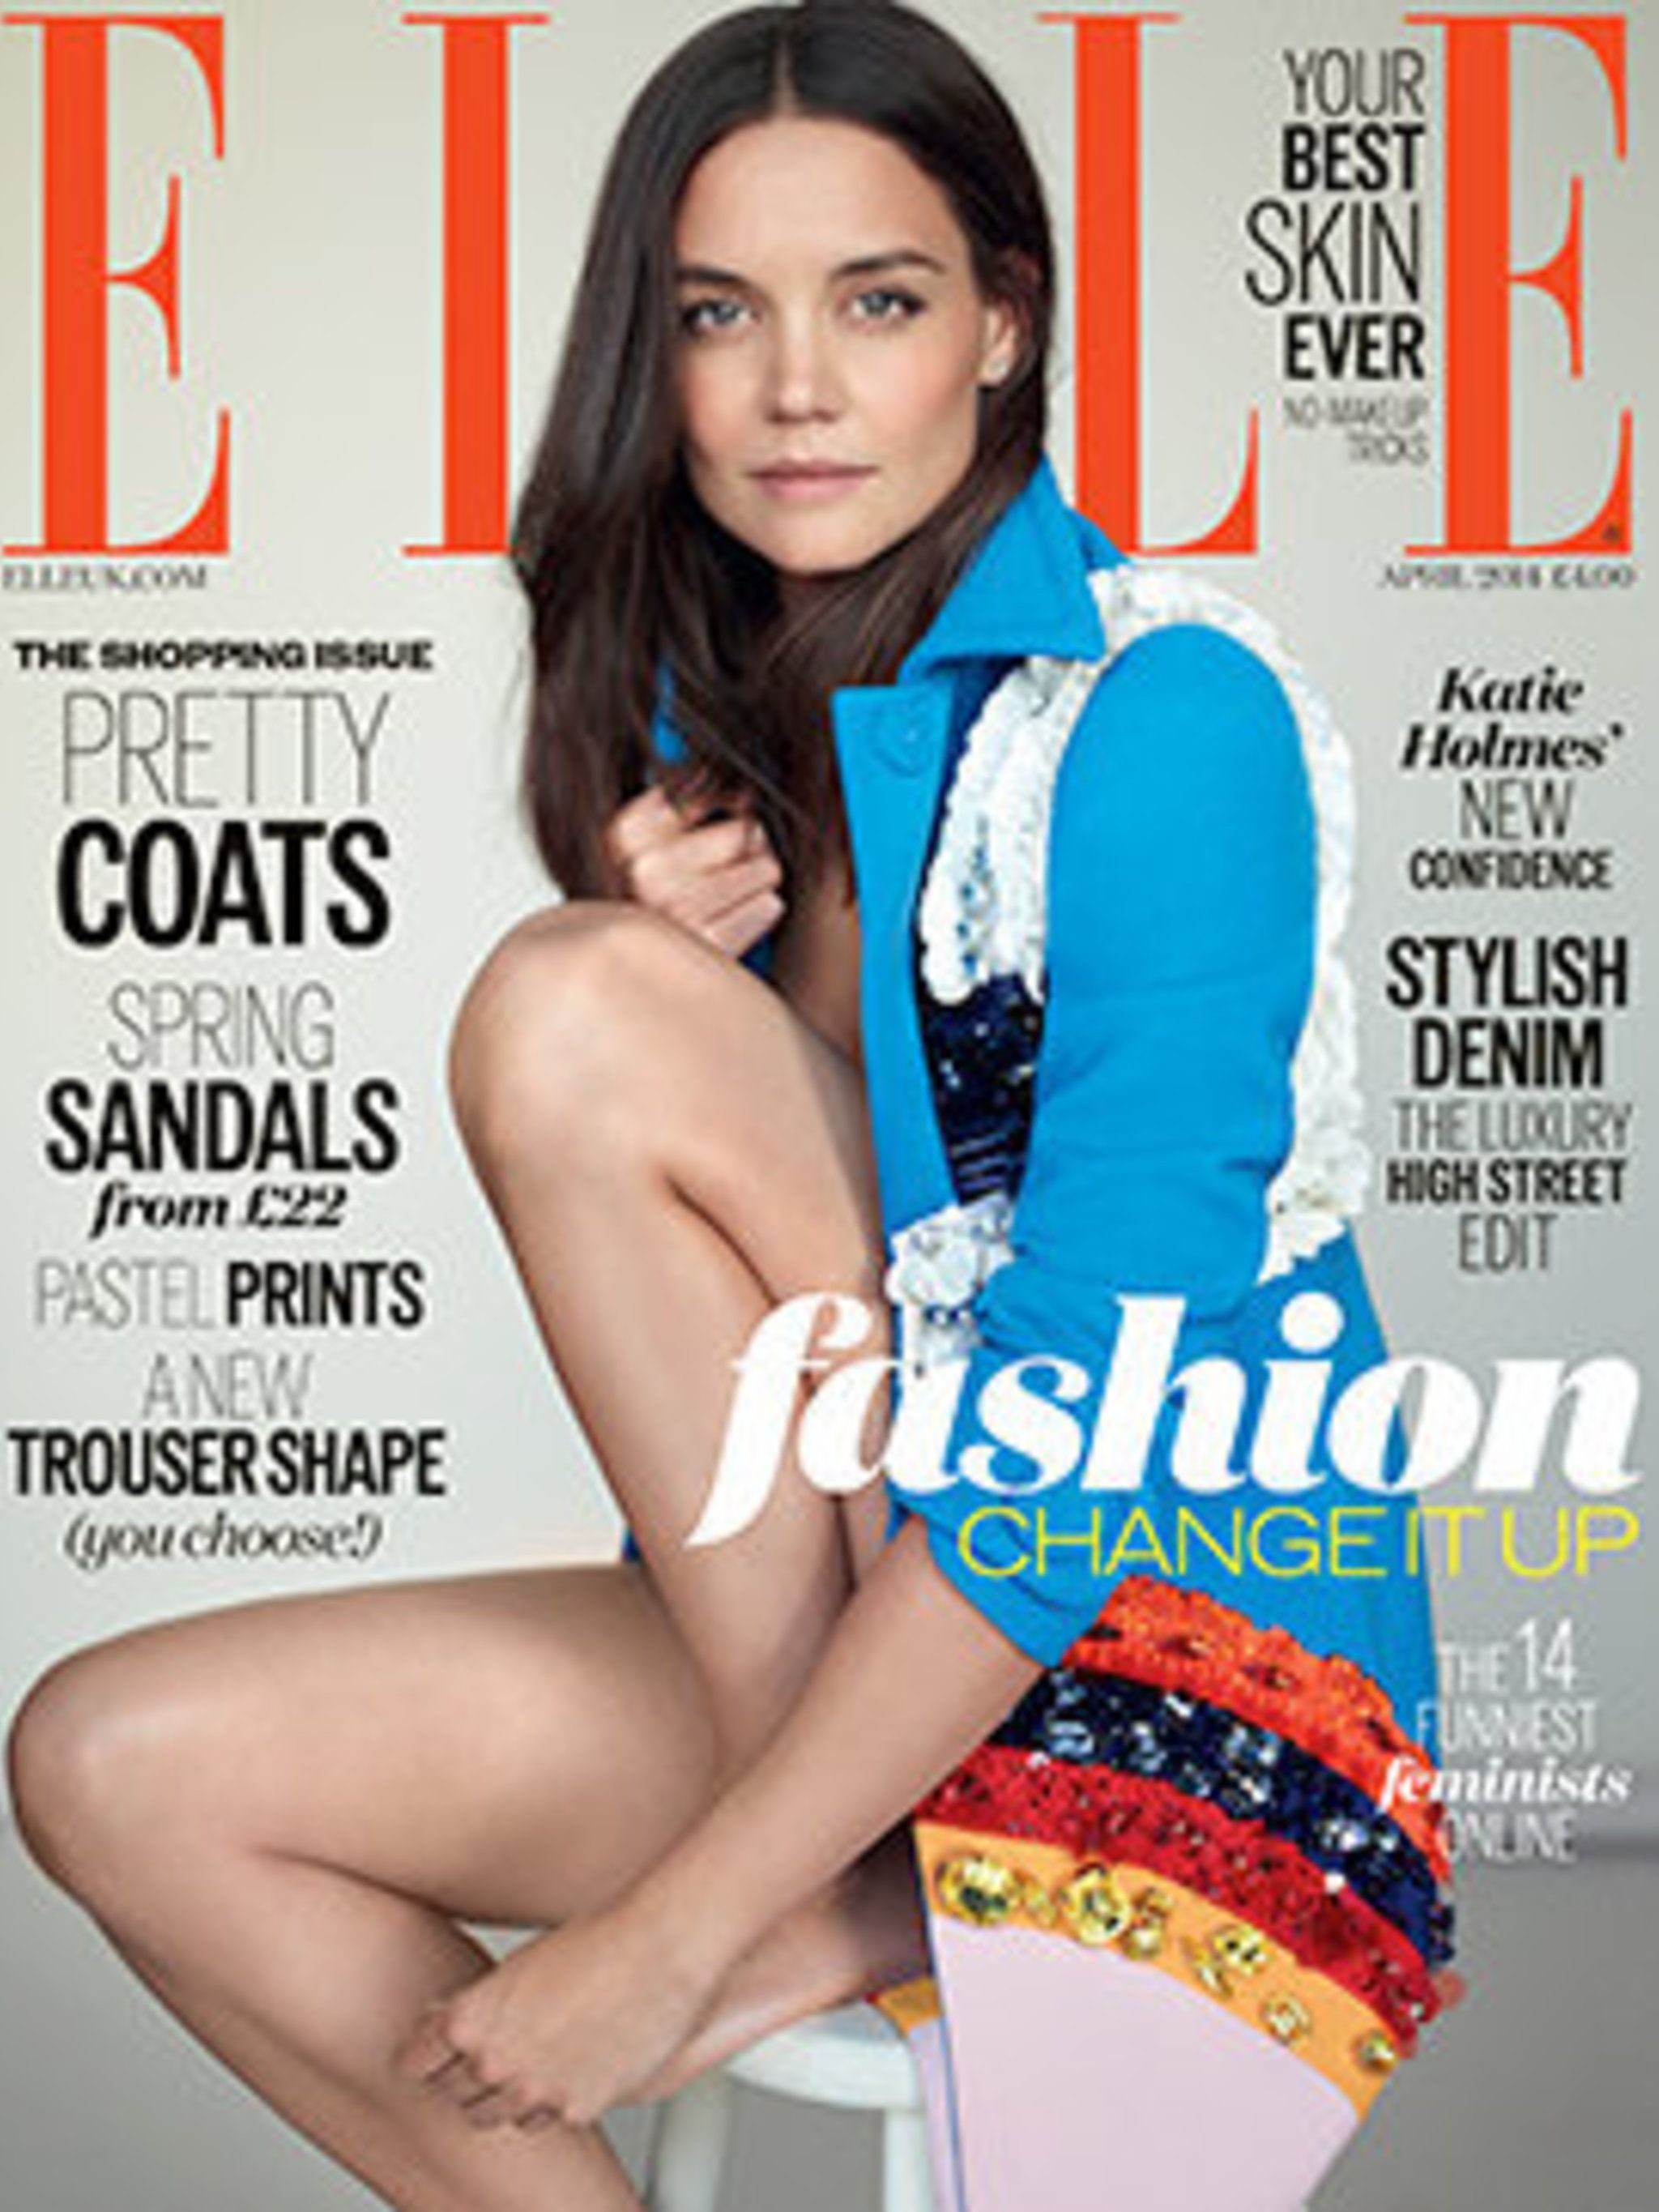 <p>Katie Holmes in Prada on the cover of ELLE, April 2014</p>